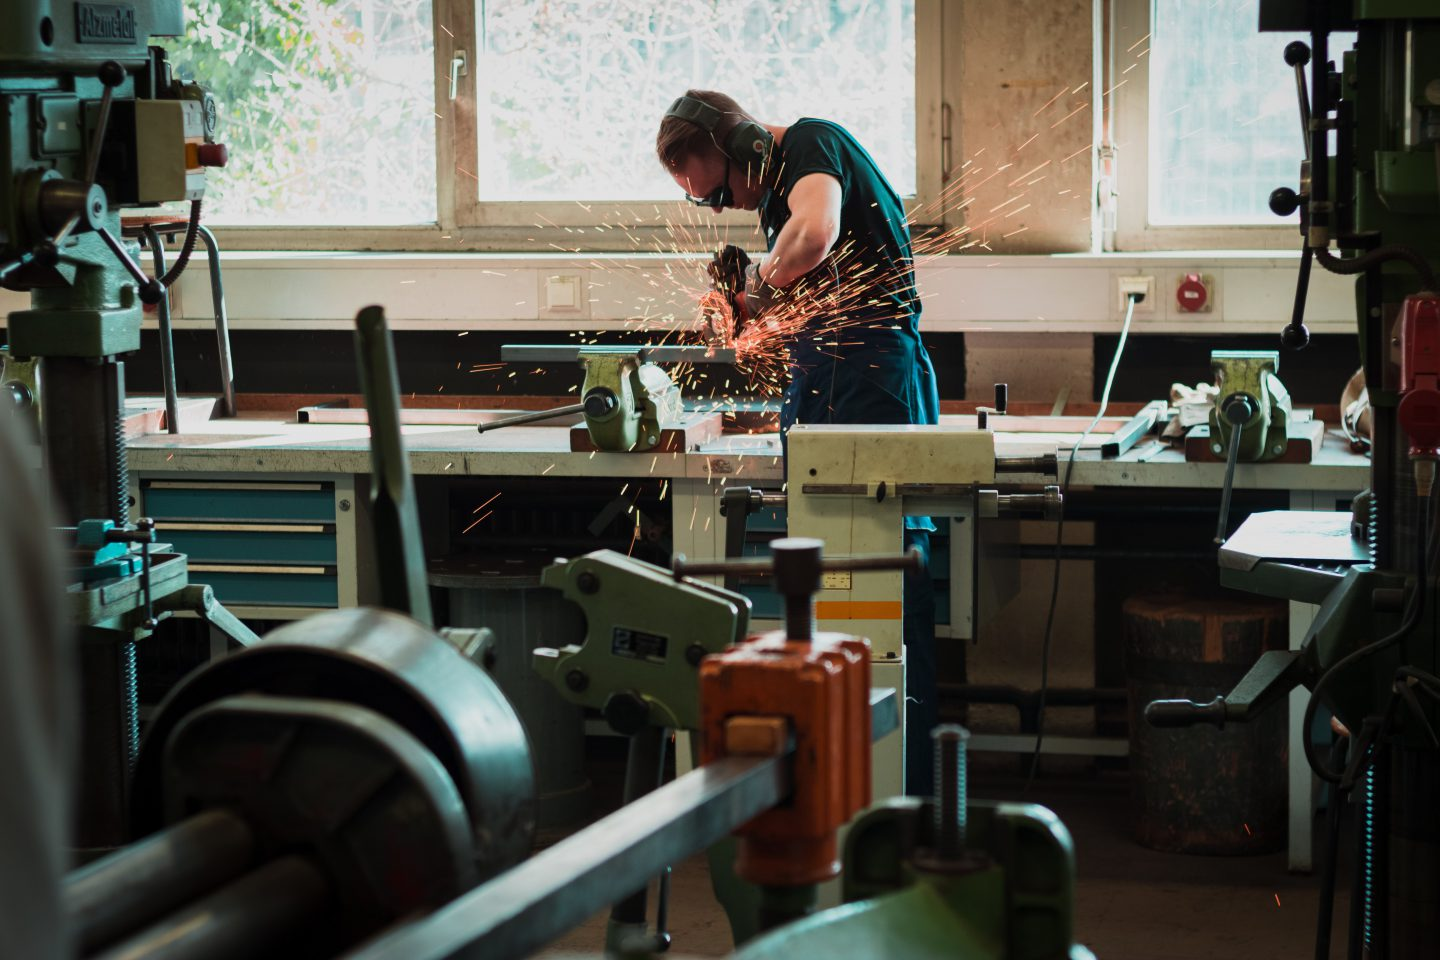 Design global, manufacture local: a new industrial revolution?